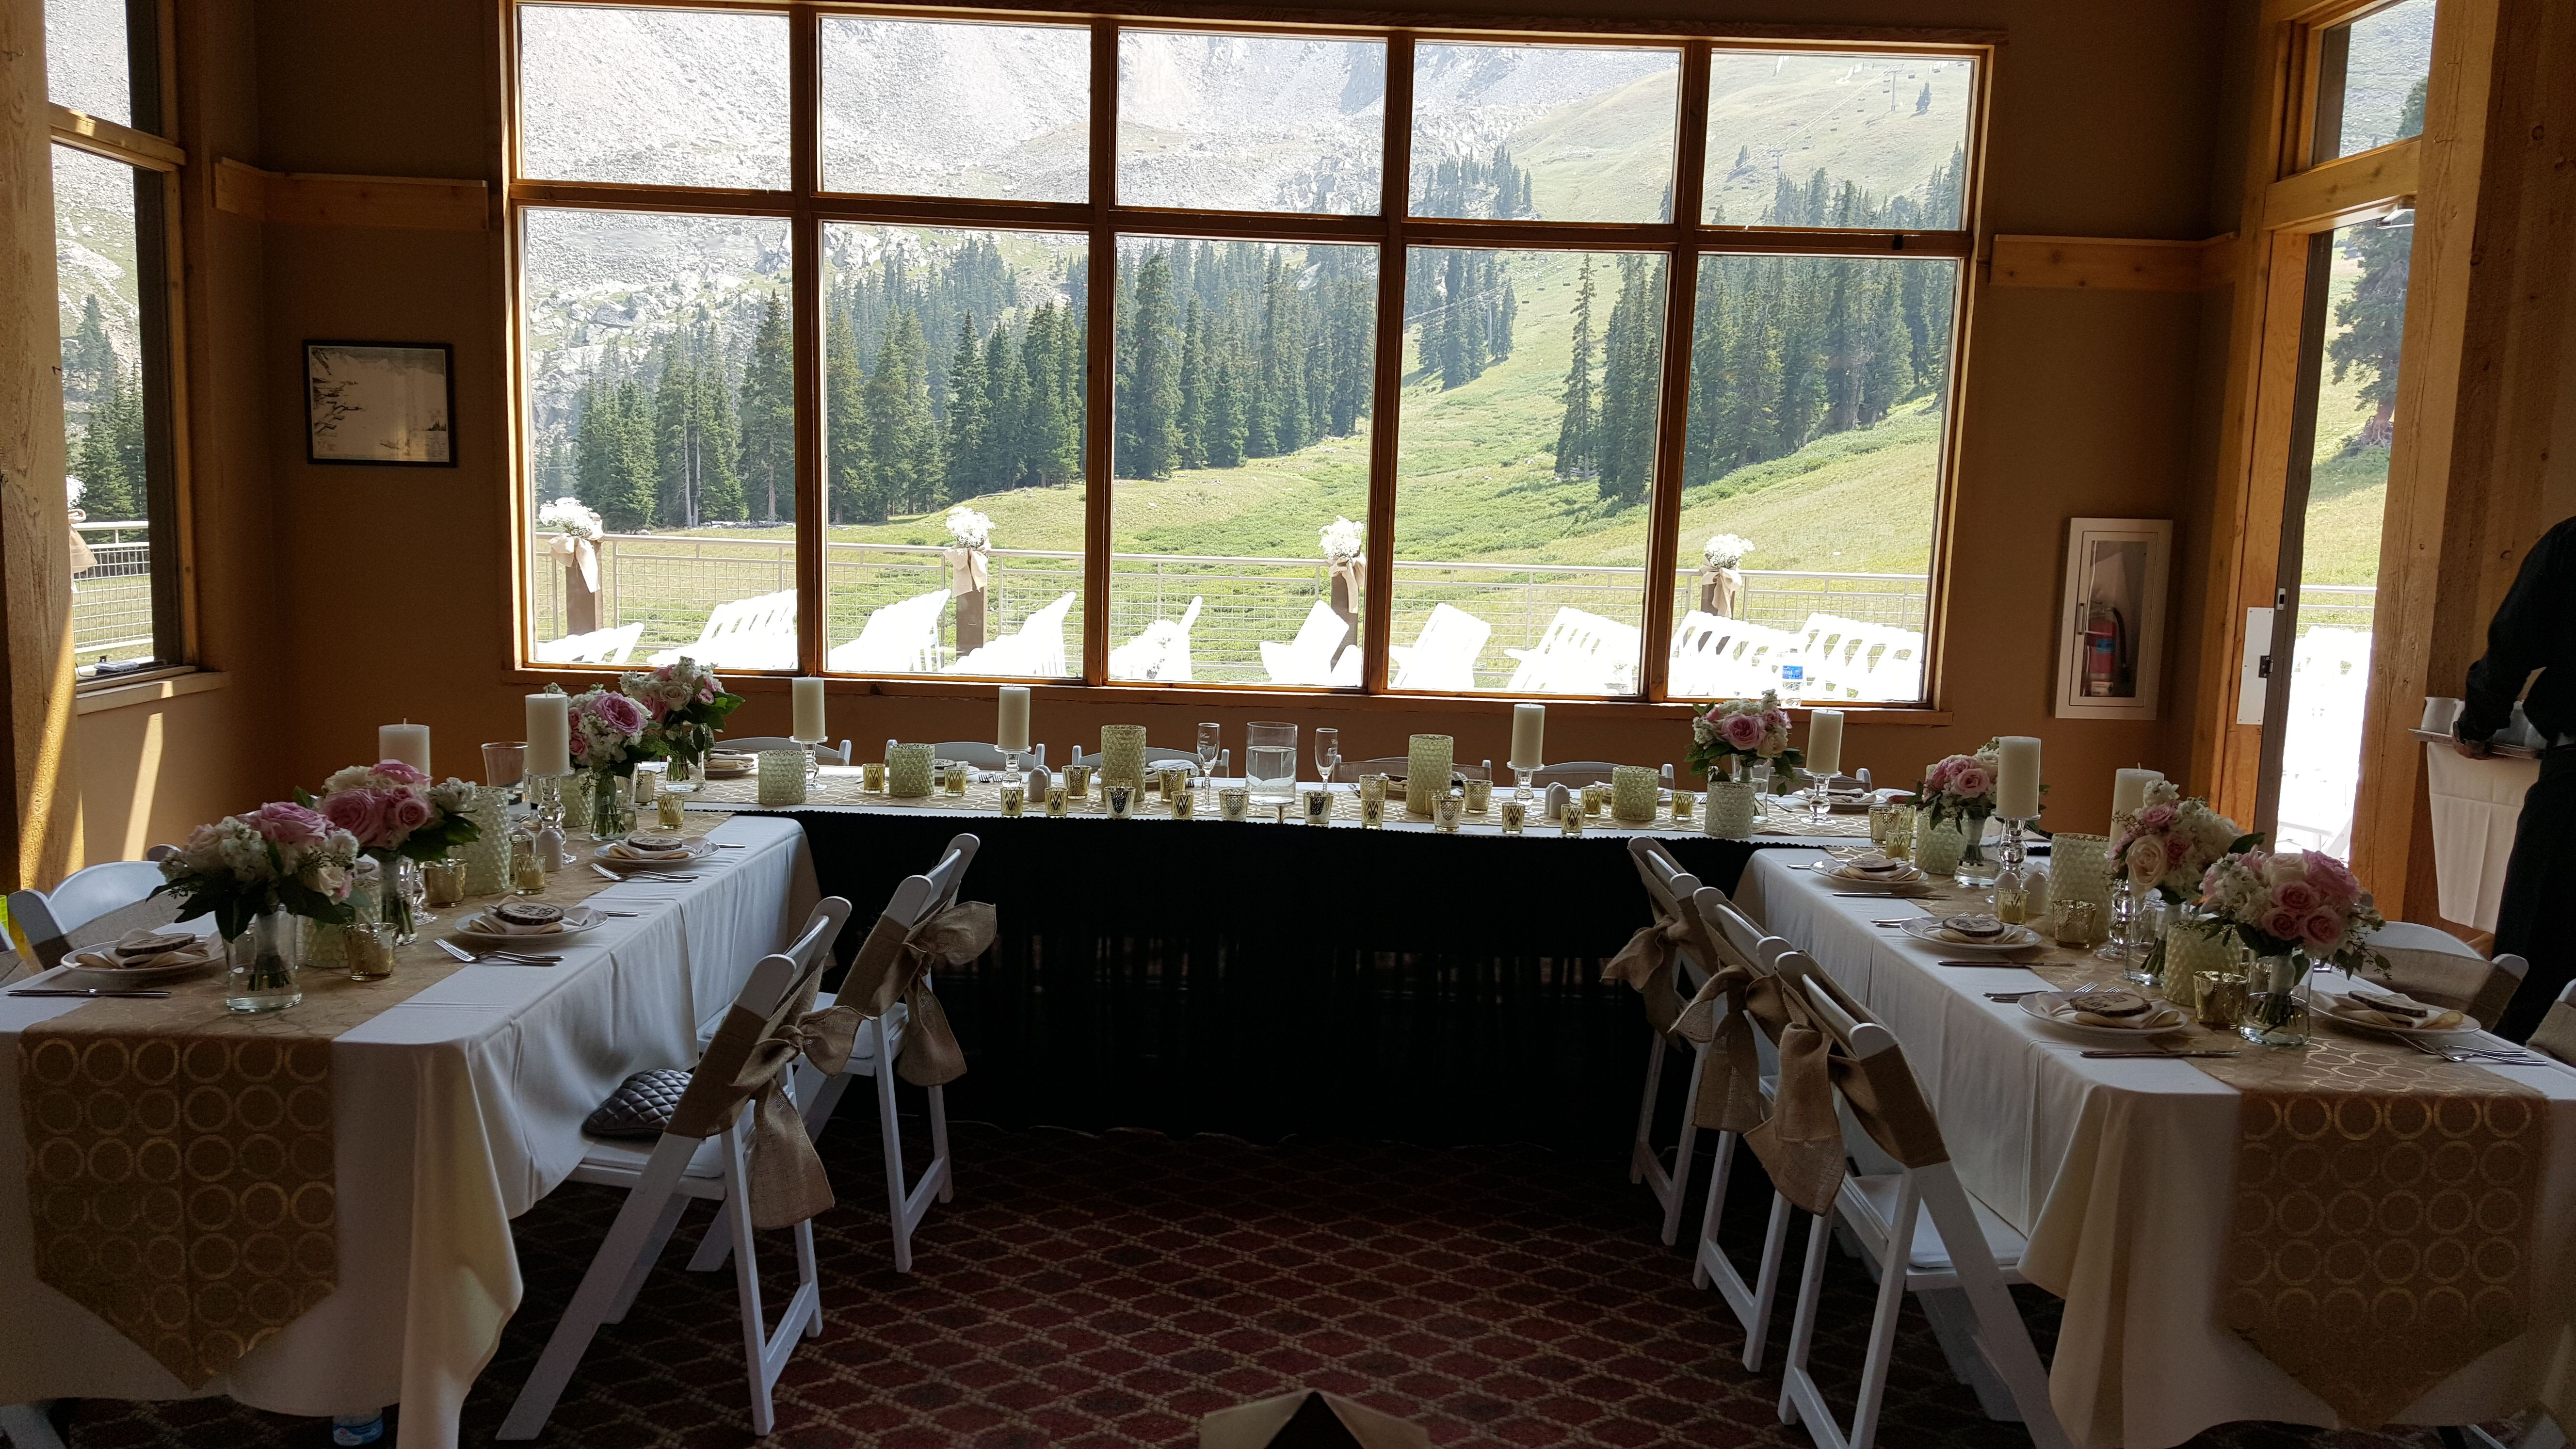 this horseshoe shaped head table can accommodate the